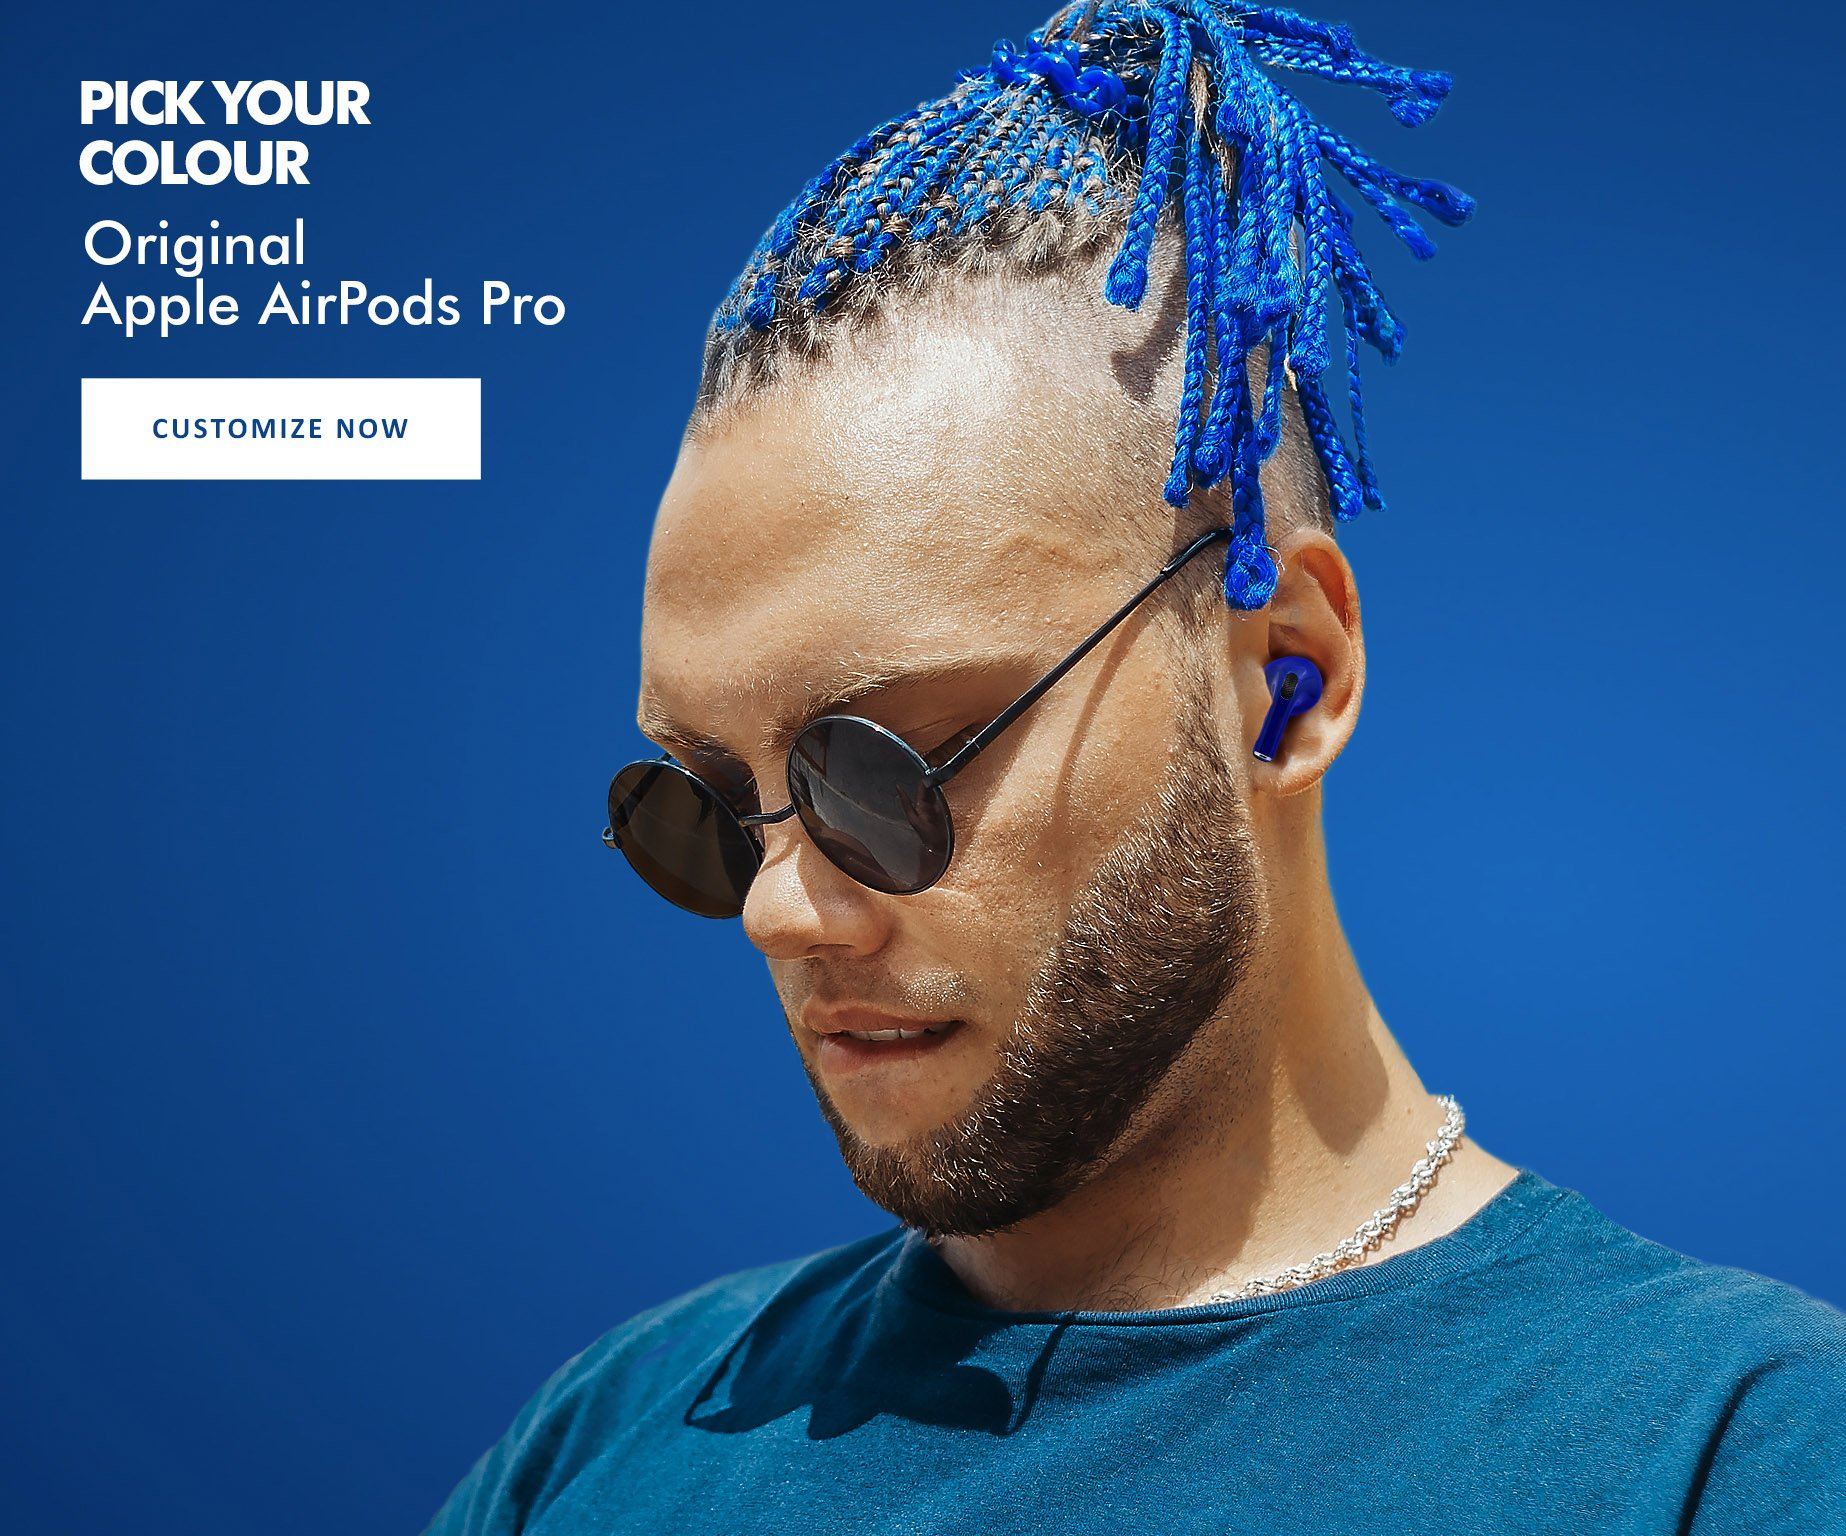 Pick Your Colour - Original Apple Airpods Pro - Customize Now